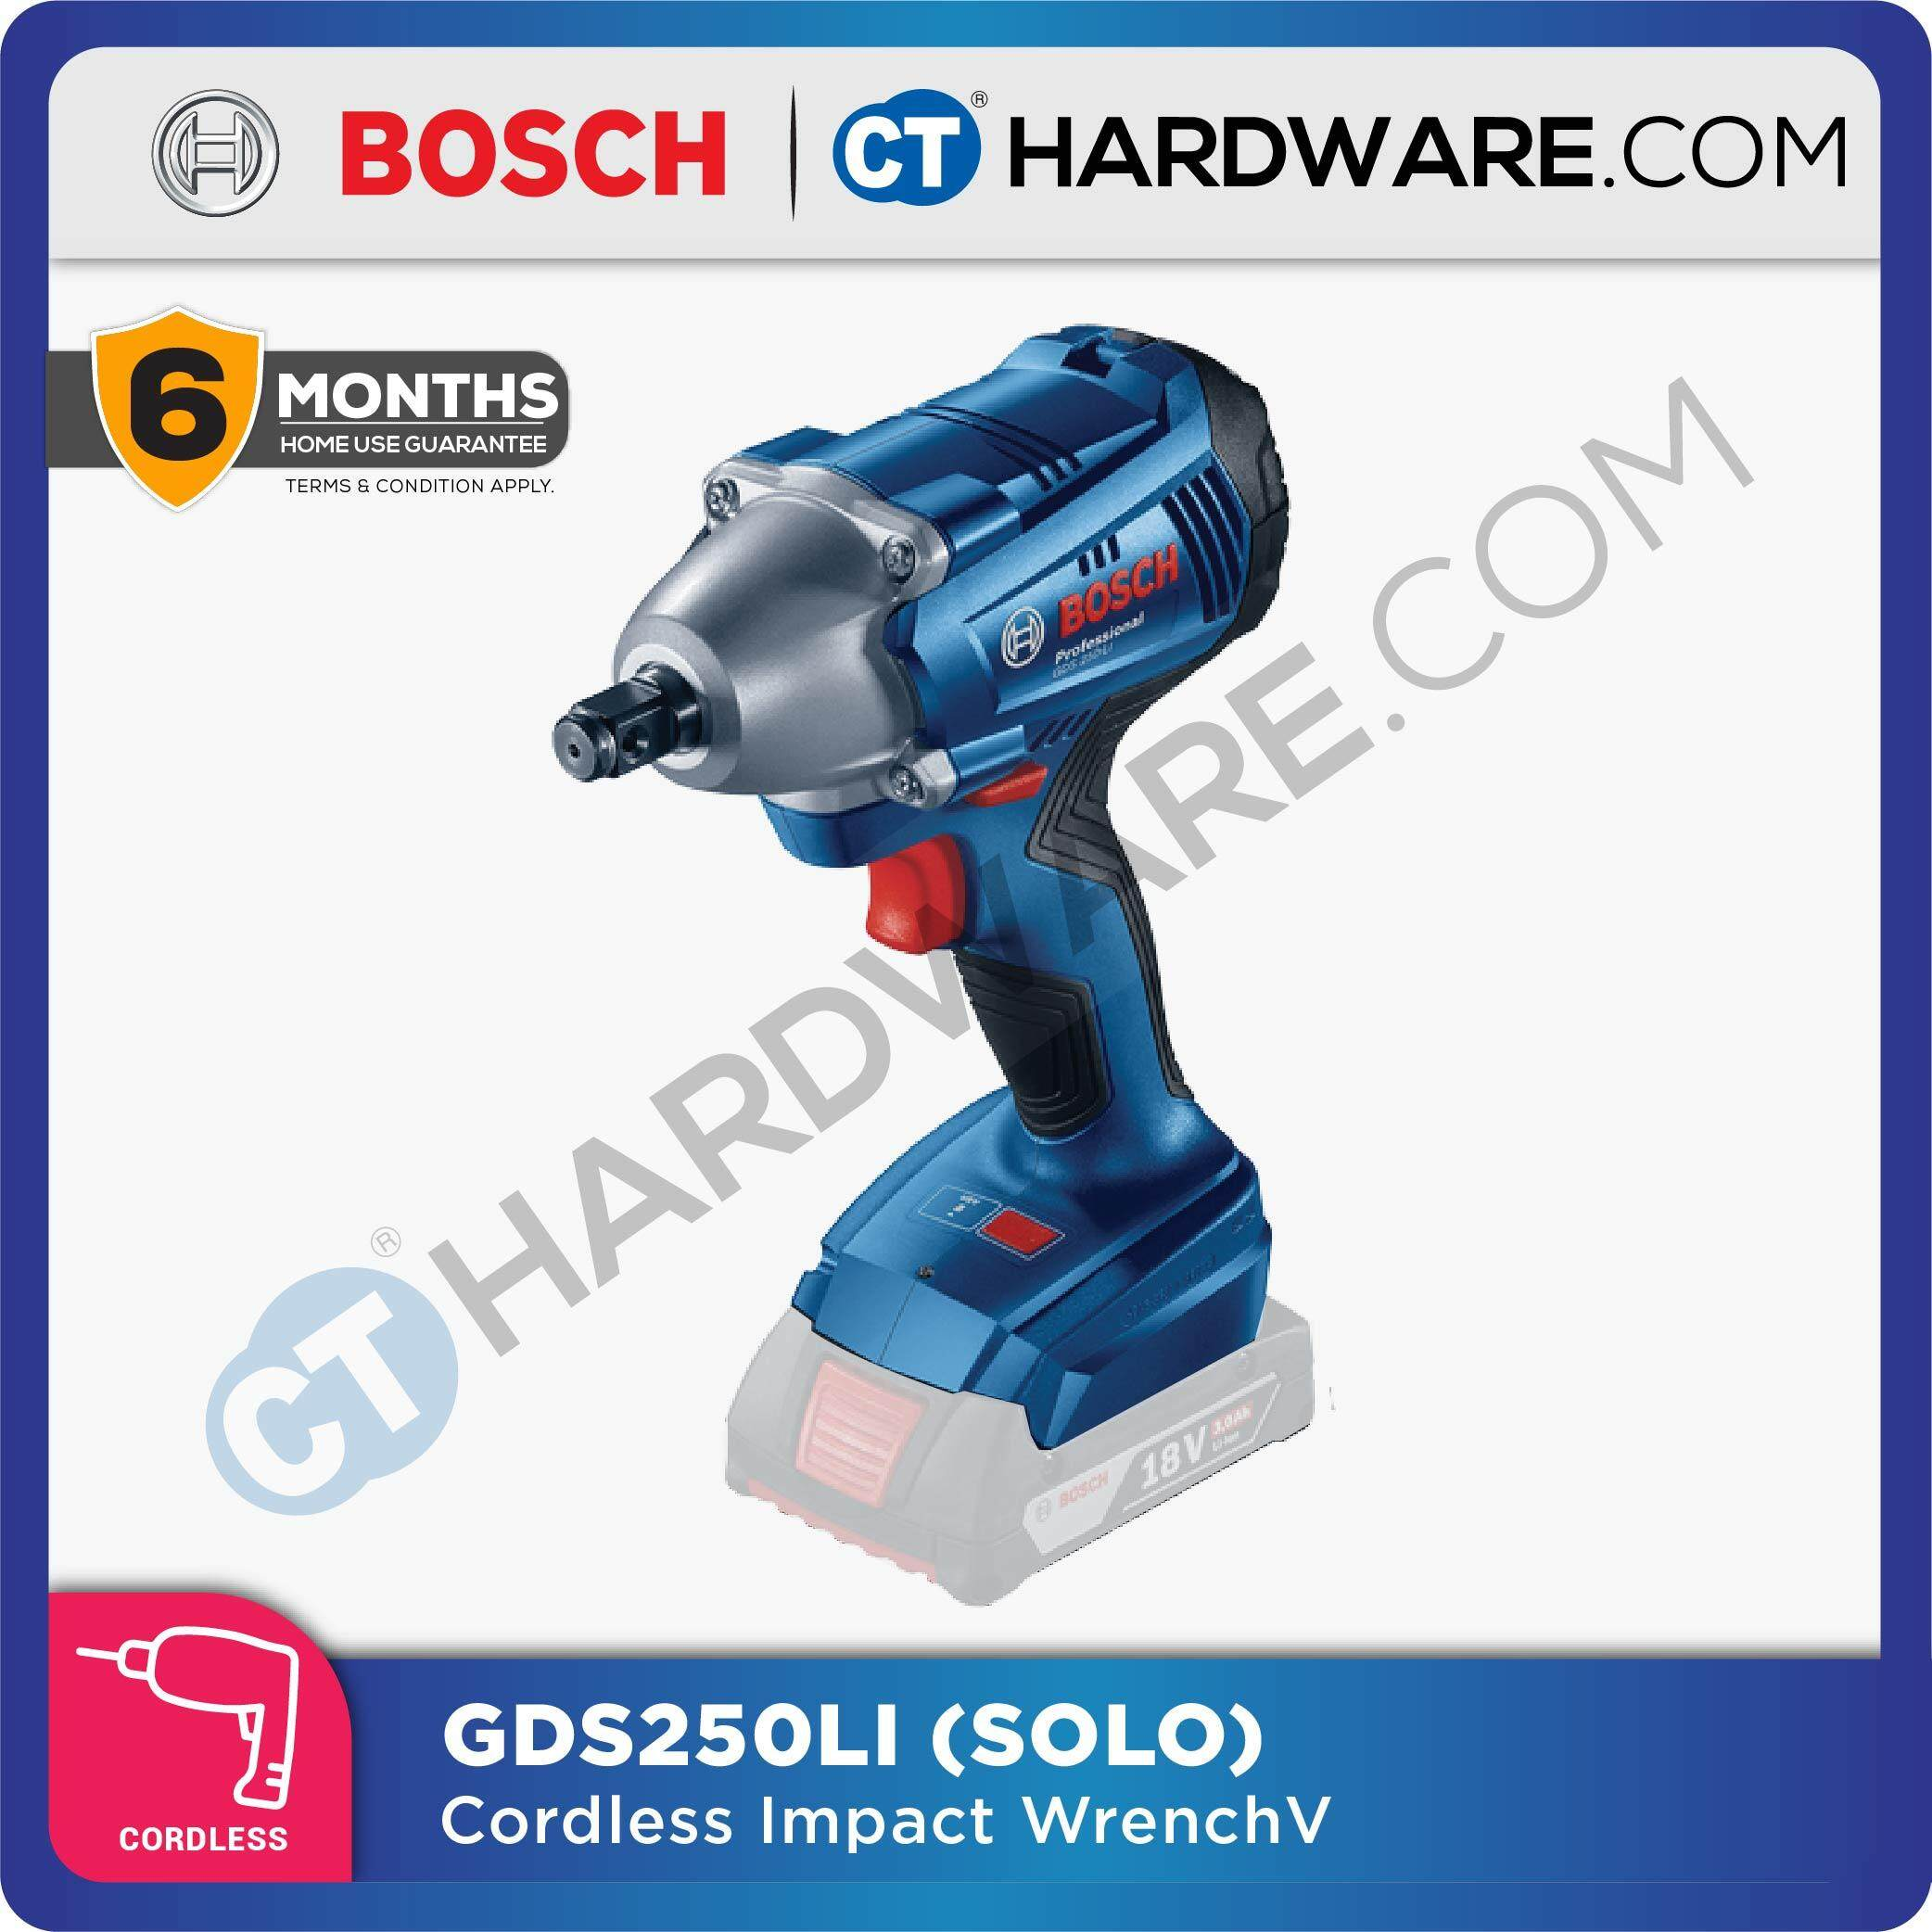 BOSCH GDS 250-LI Professional Cordless Impact Wrench 18V (NO BATTERY & NO CHARGER) [GDS250LISOLO]